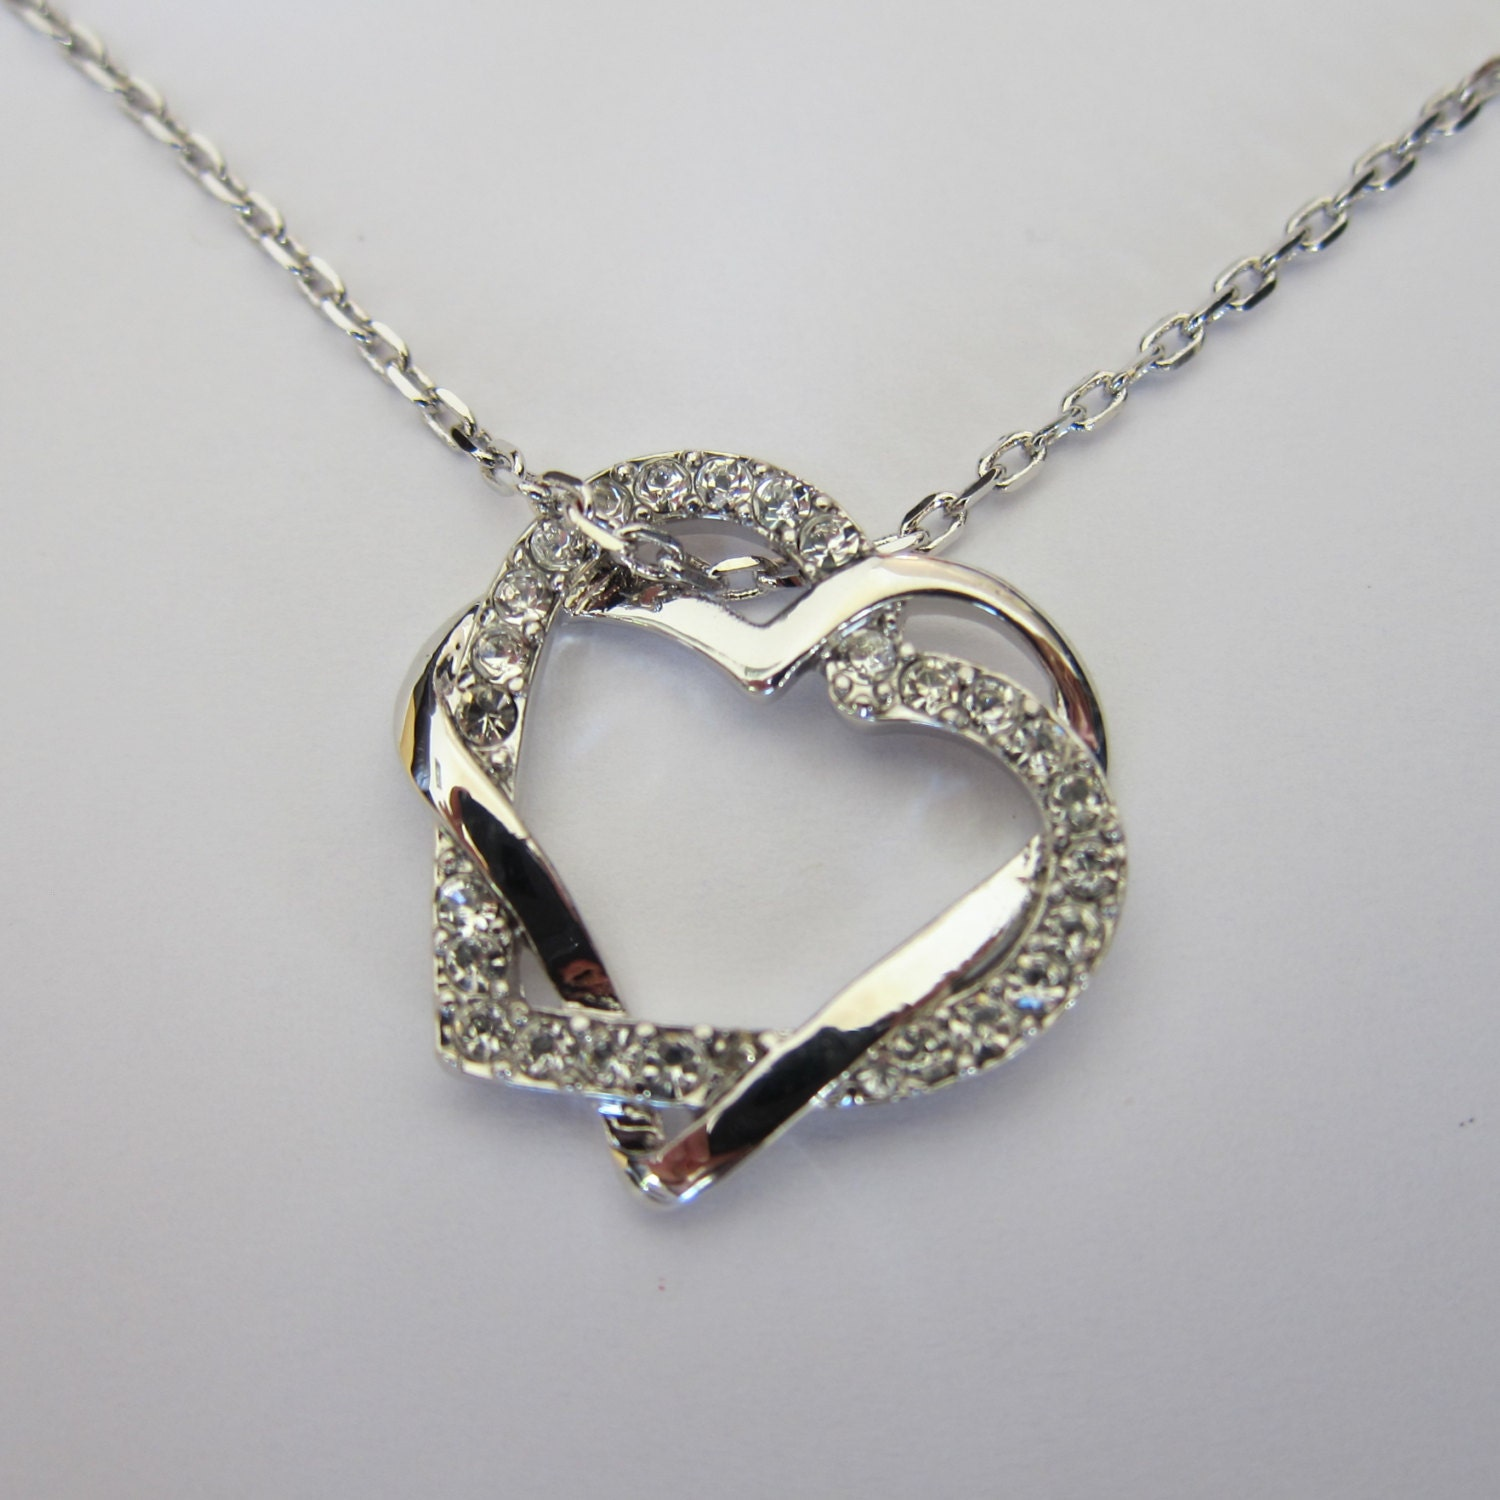 Shiny Rhodium Swirl Rhinestone Heart Necklace Boyfriend